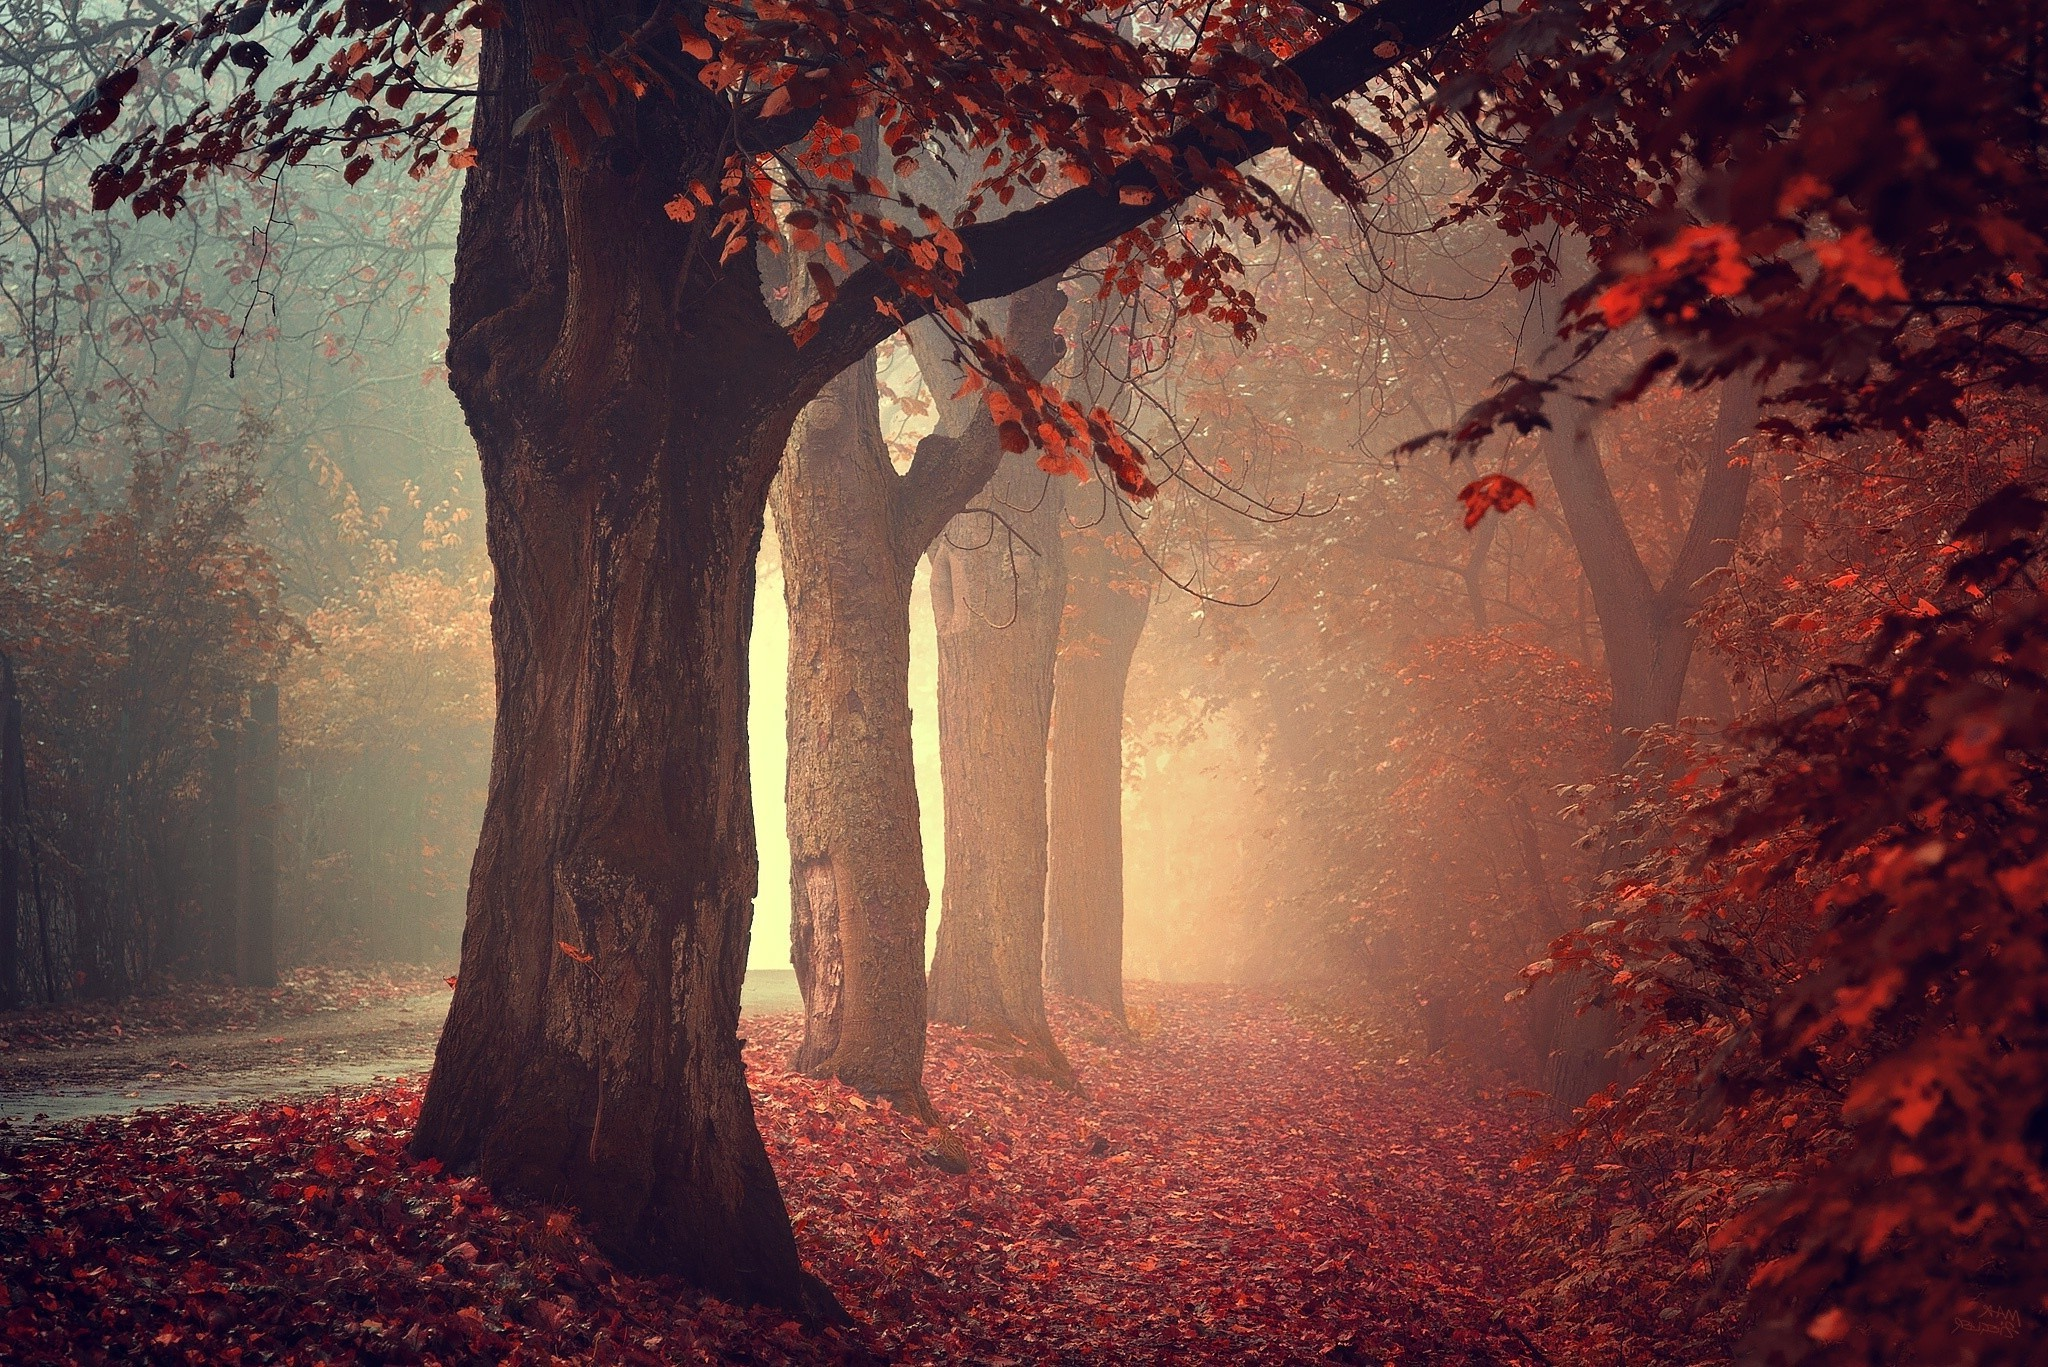 Autumn Falling Leaves Wallpaper Nature Trees Fall Leaves Red Path Mist Forest Red